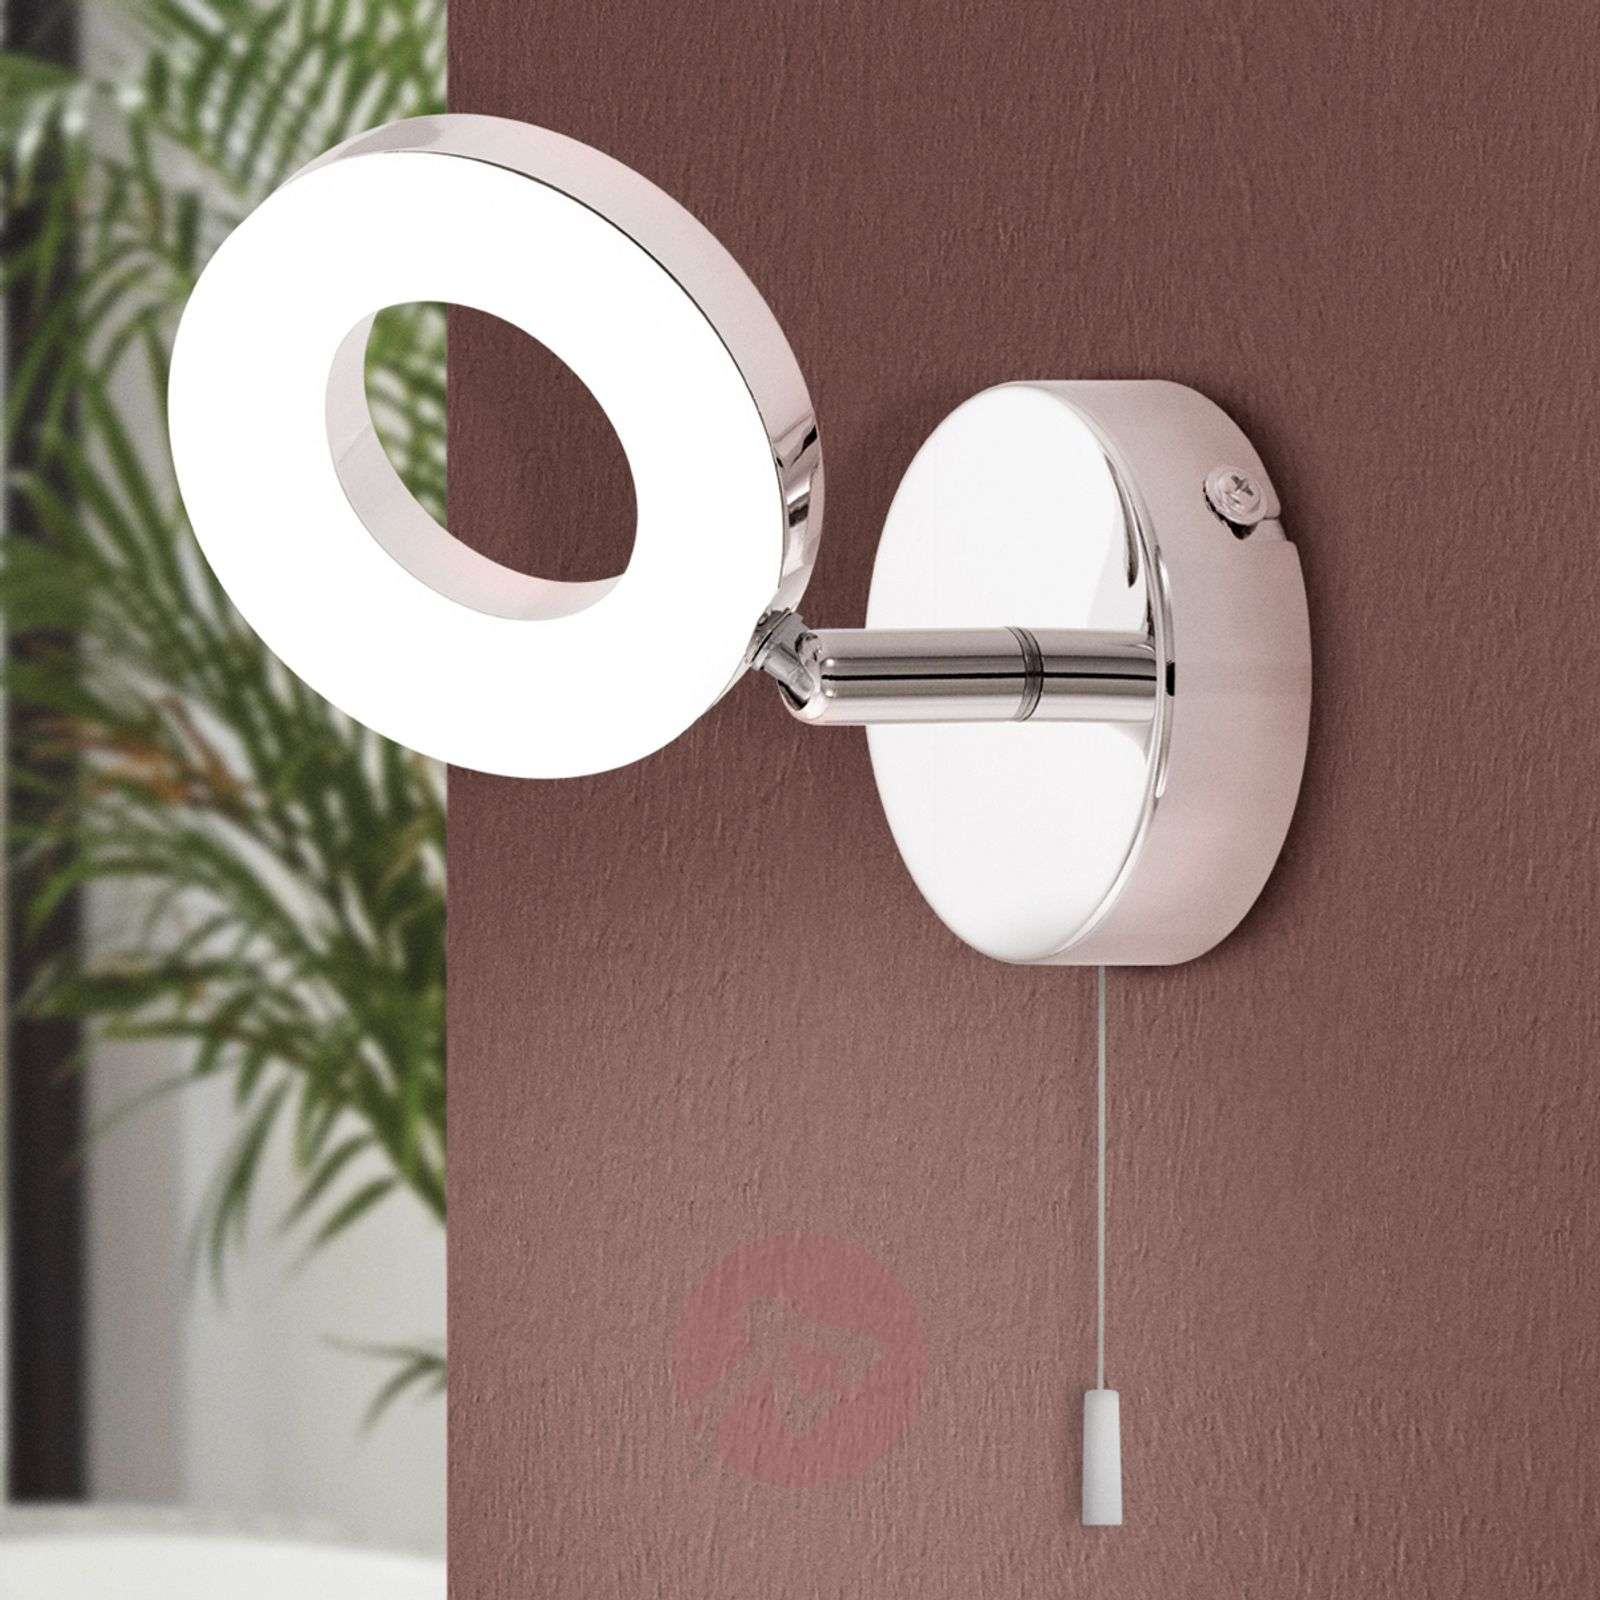 Applique LED Gonaro interrupteur à tirette-3031851-01